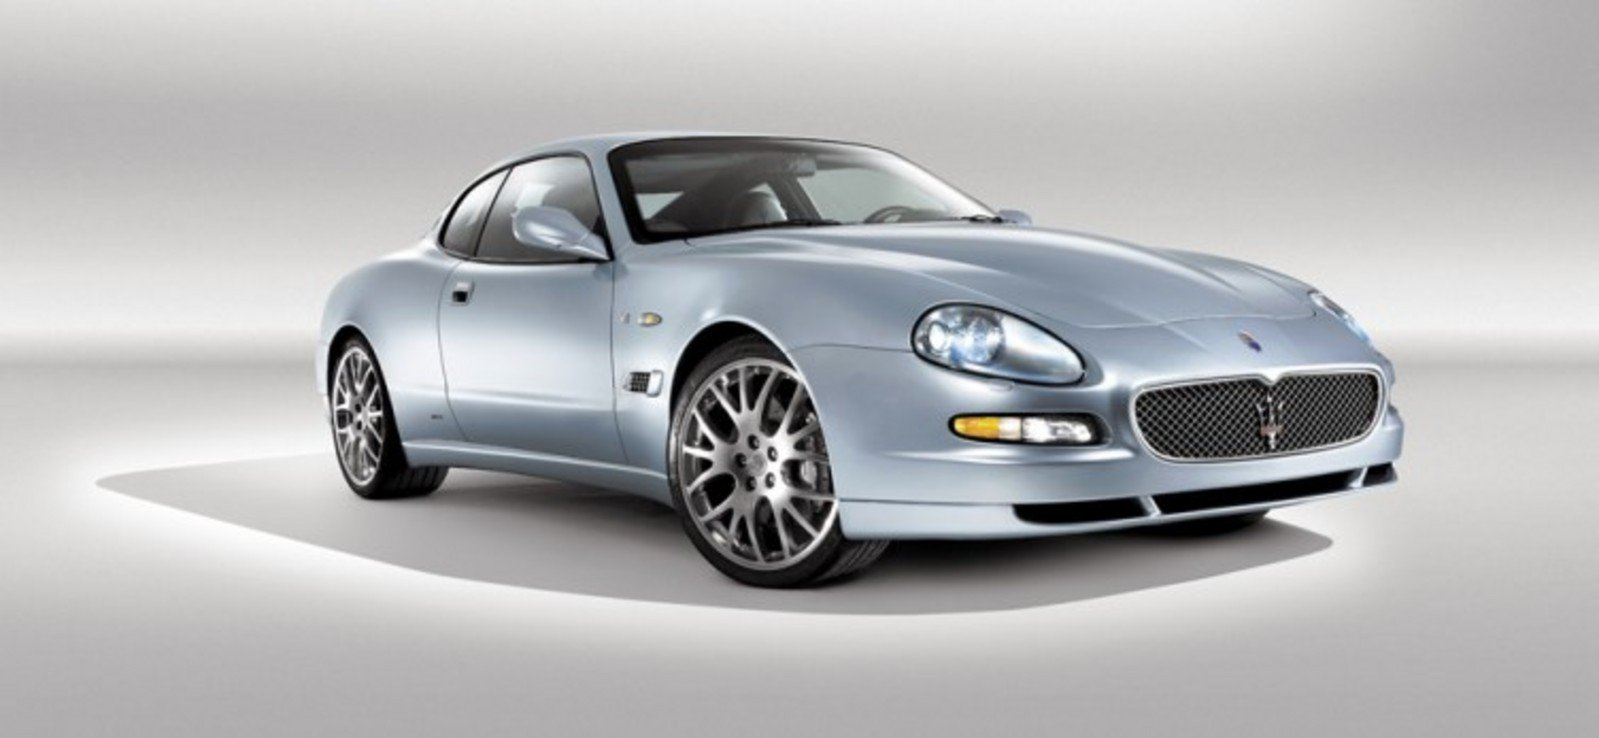 Maserati coupe photo - 2